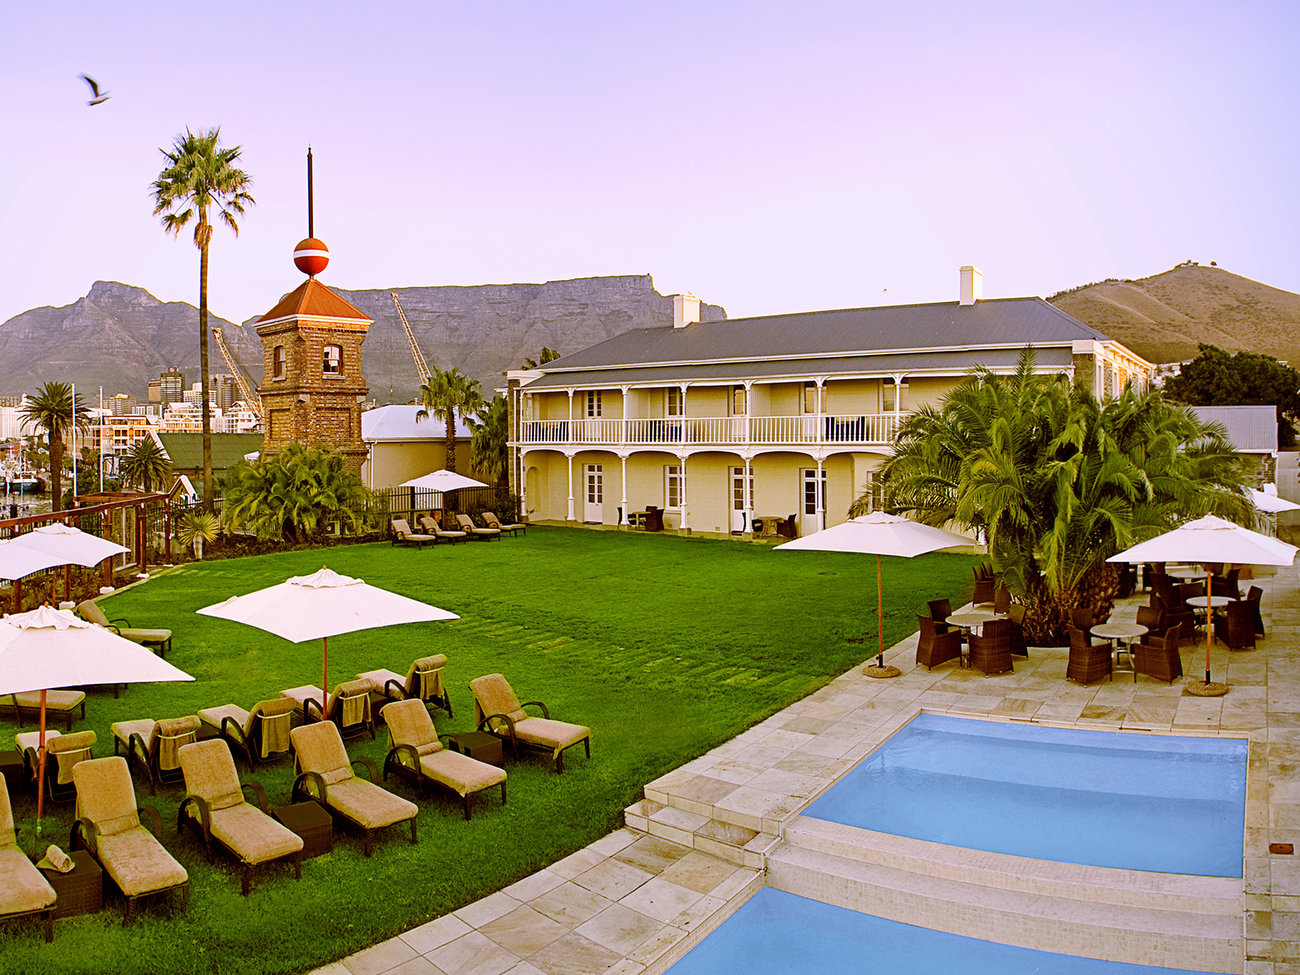 Dock House Hotel in Capetown